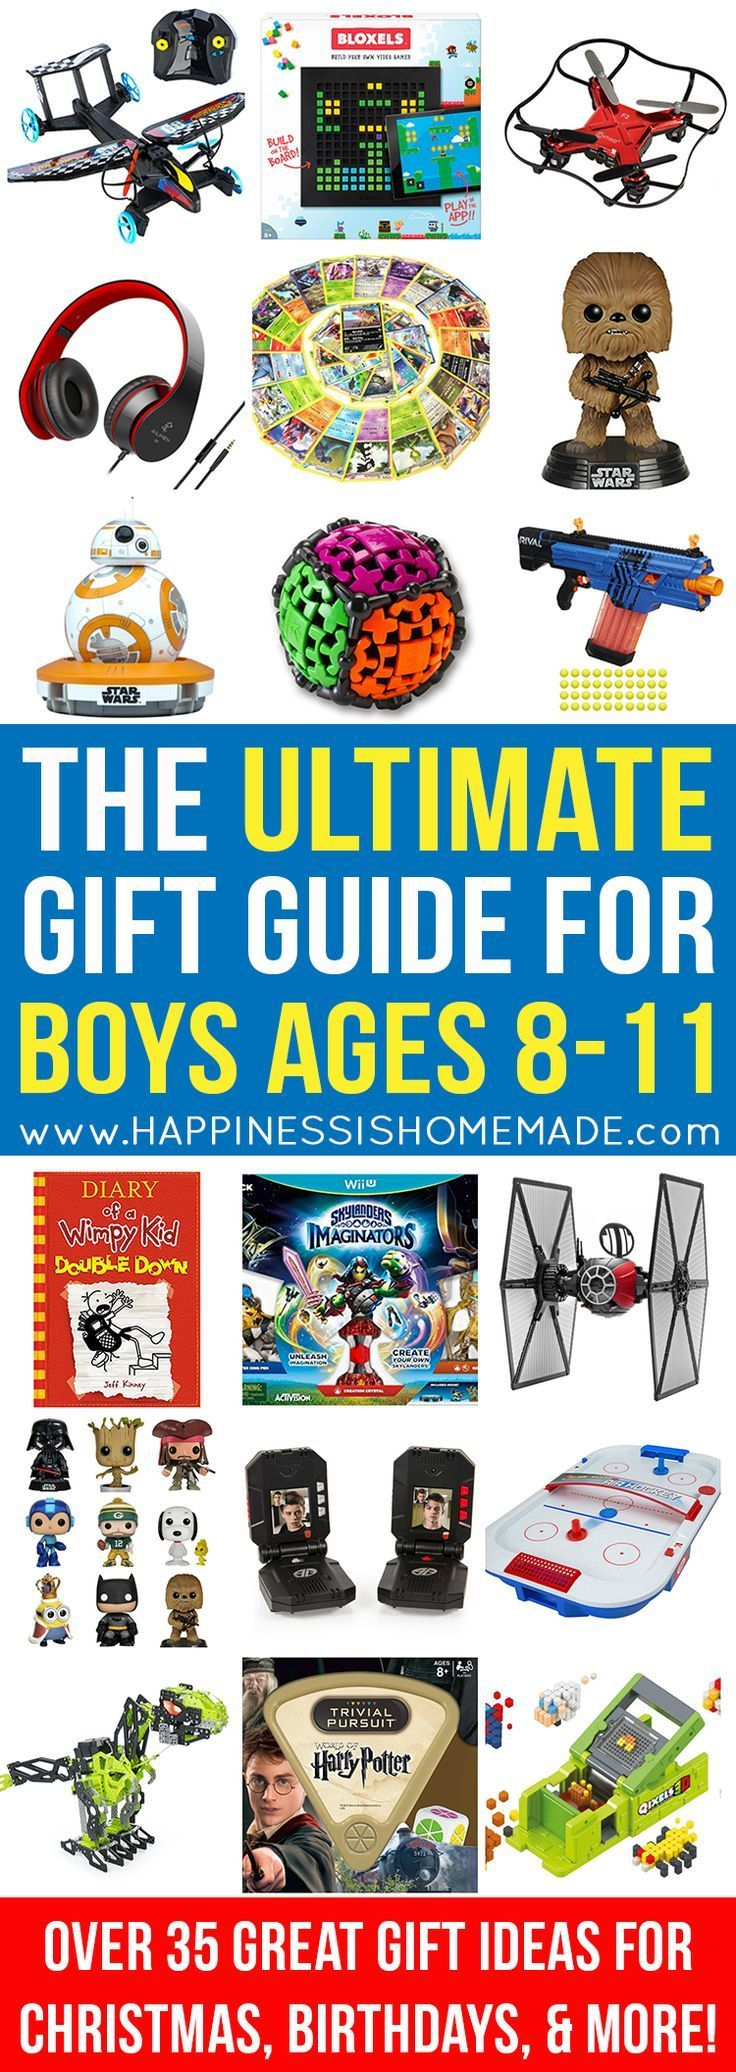 Gifts For Girls 11 Years | Division of Global Affairs